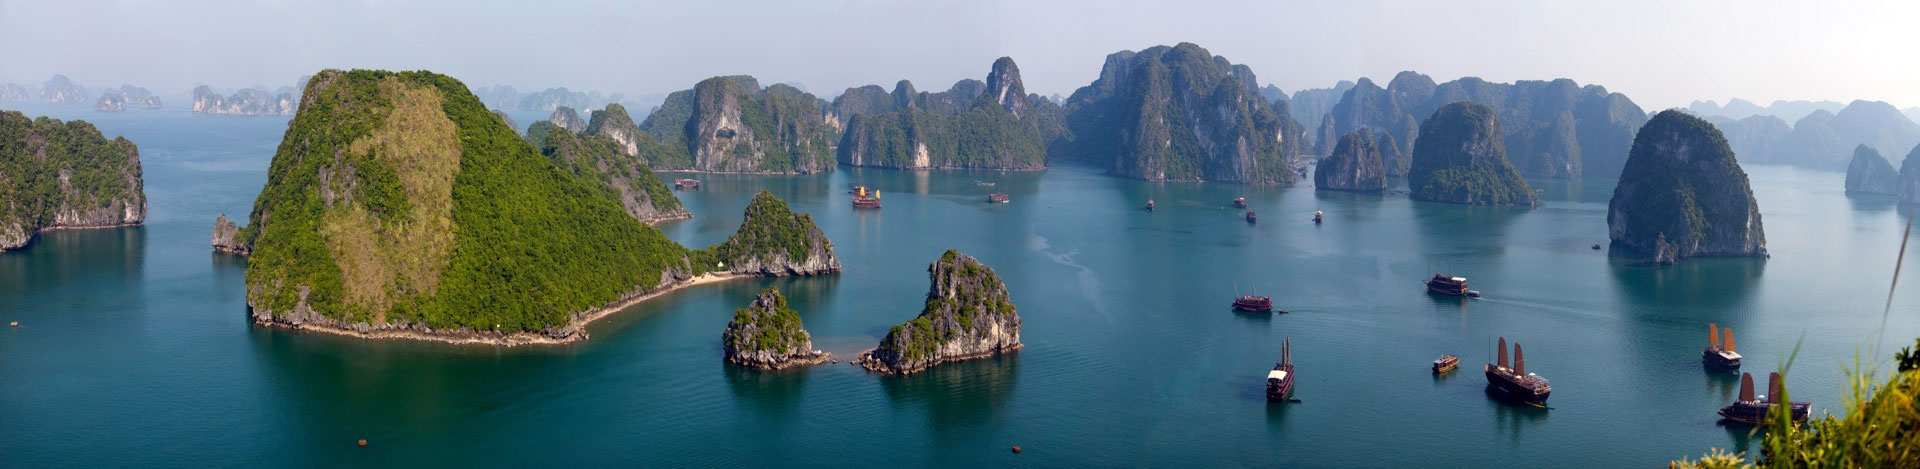 Halong bay, a world wonder